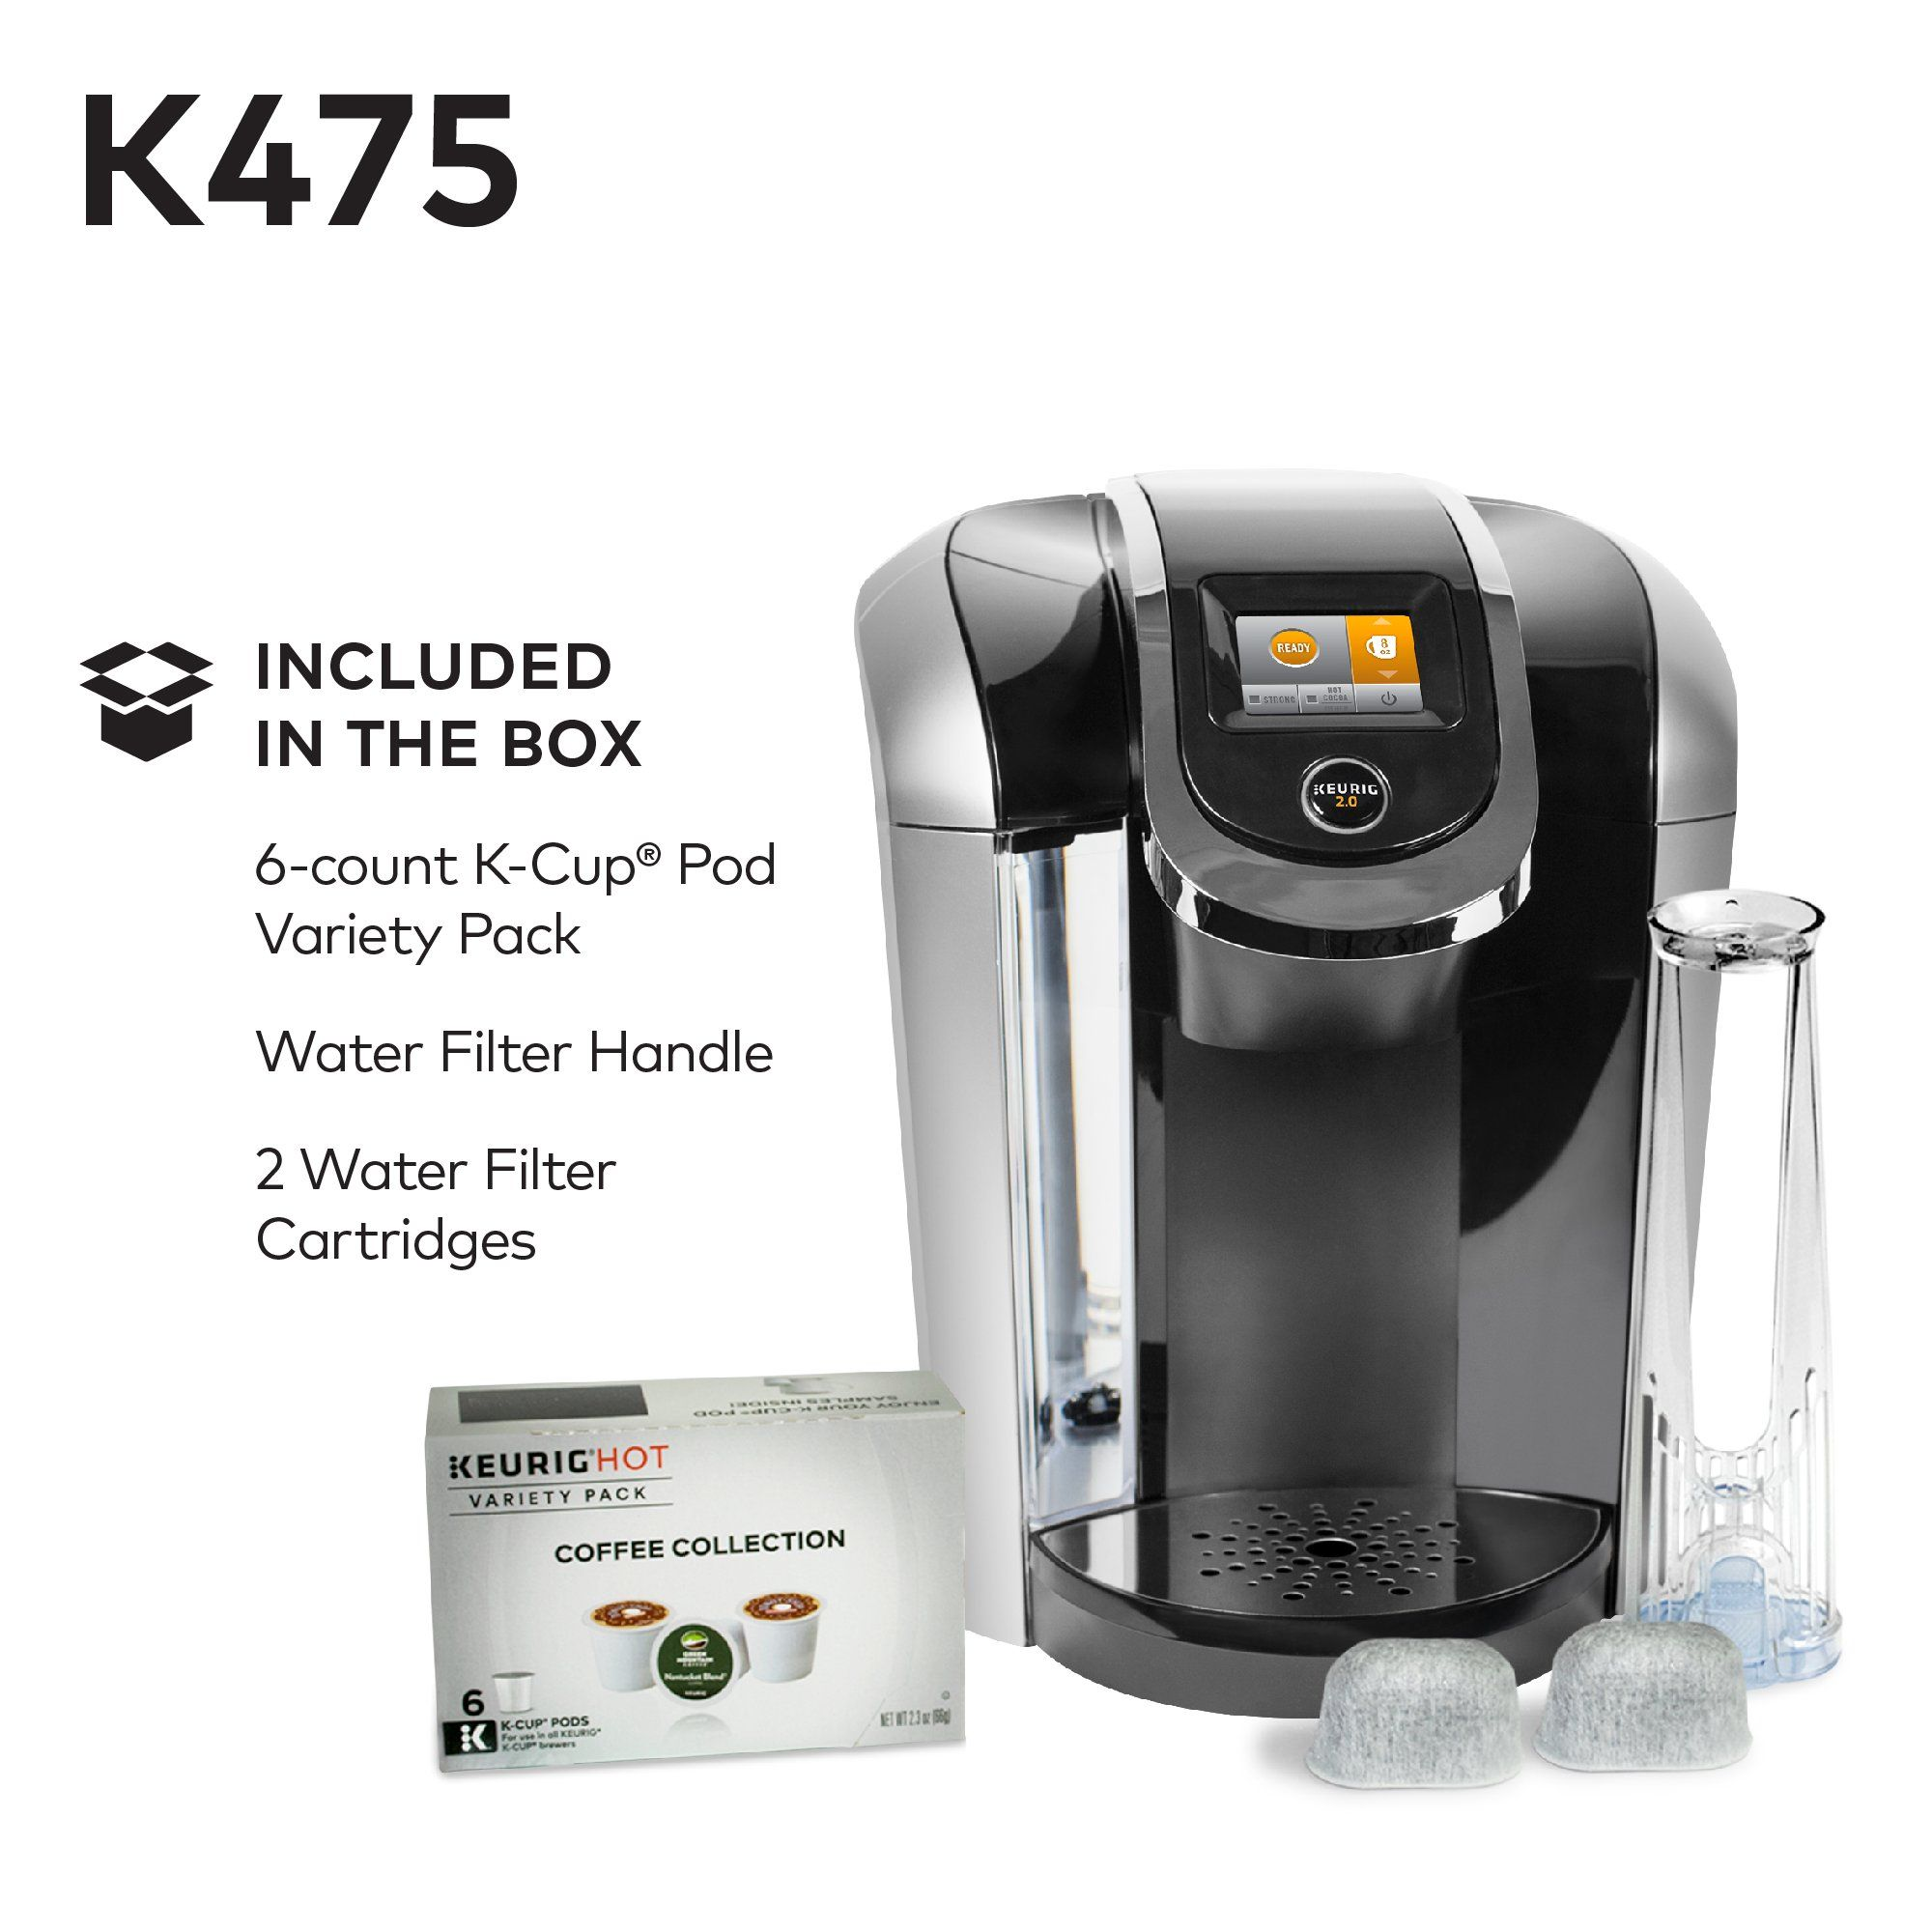 Keurig K475 Single Serve Kcup Pod Coffee Maker With 12oz Brew Size Strength Control And Pod Coffee Makers Coffee Maker With Grinder Single Serve Coffee Makers